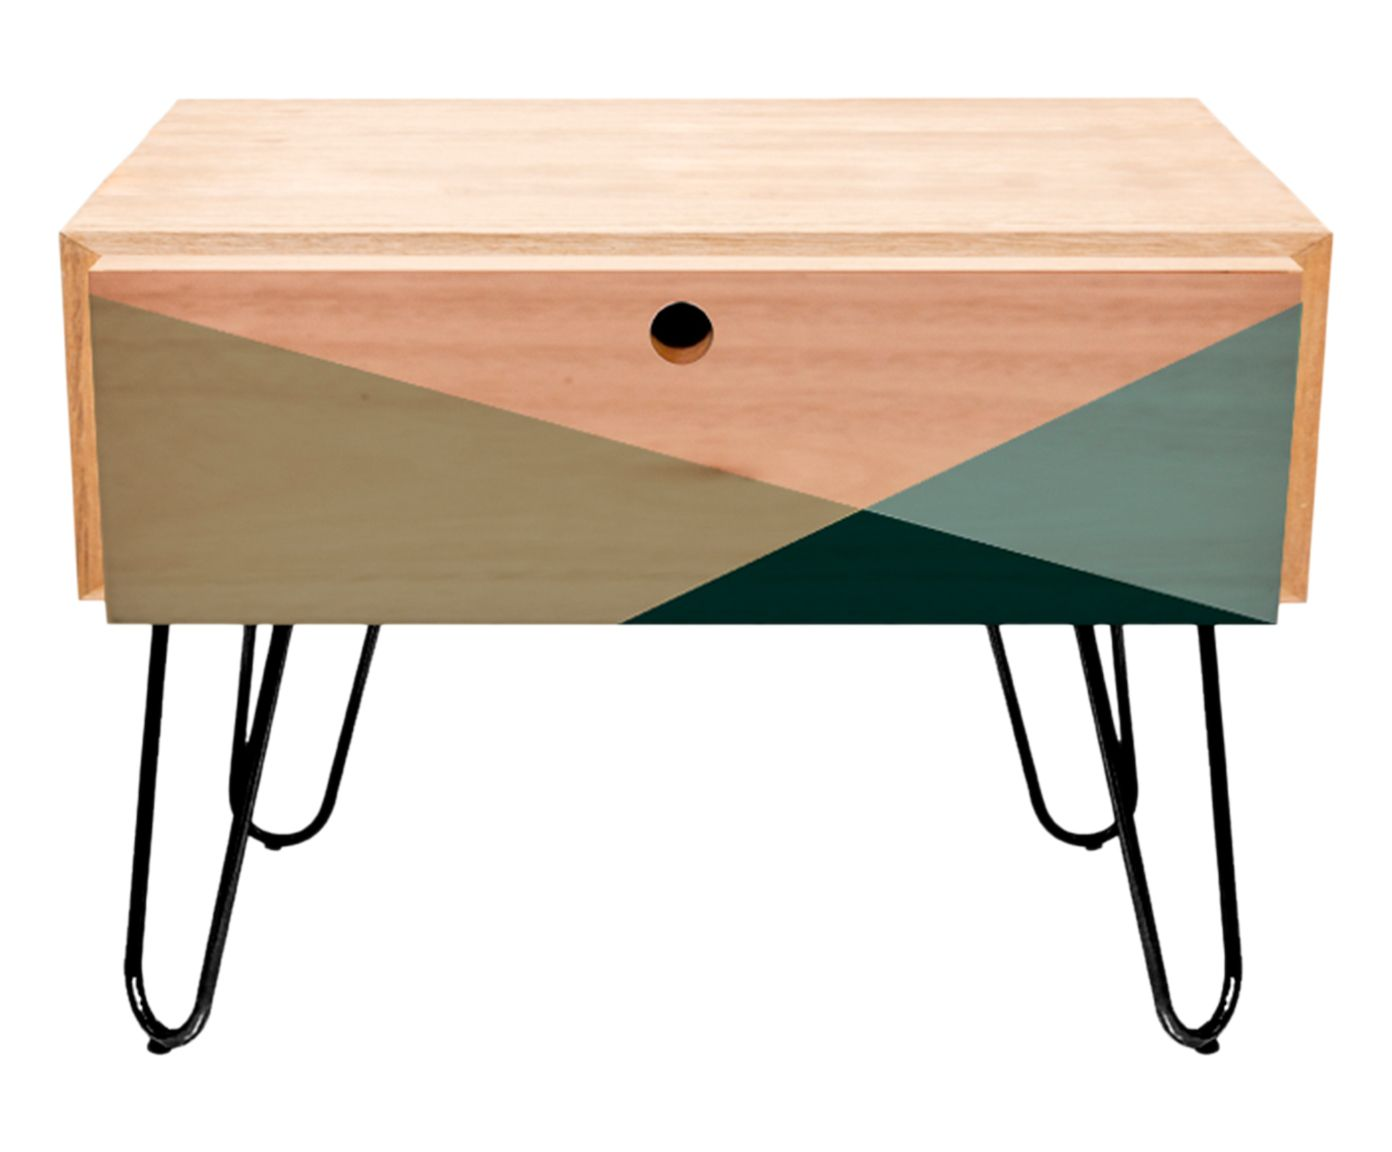 Mesa Lateral Wood Geometric Verde - 50,5X51X44cm | Westwing.com.br